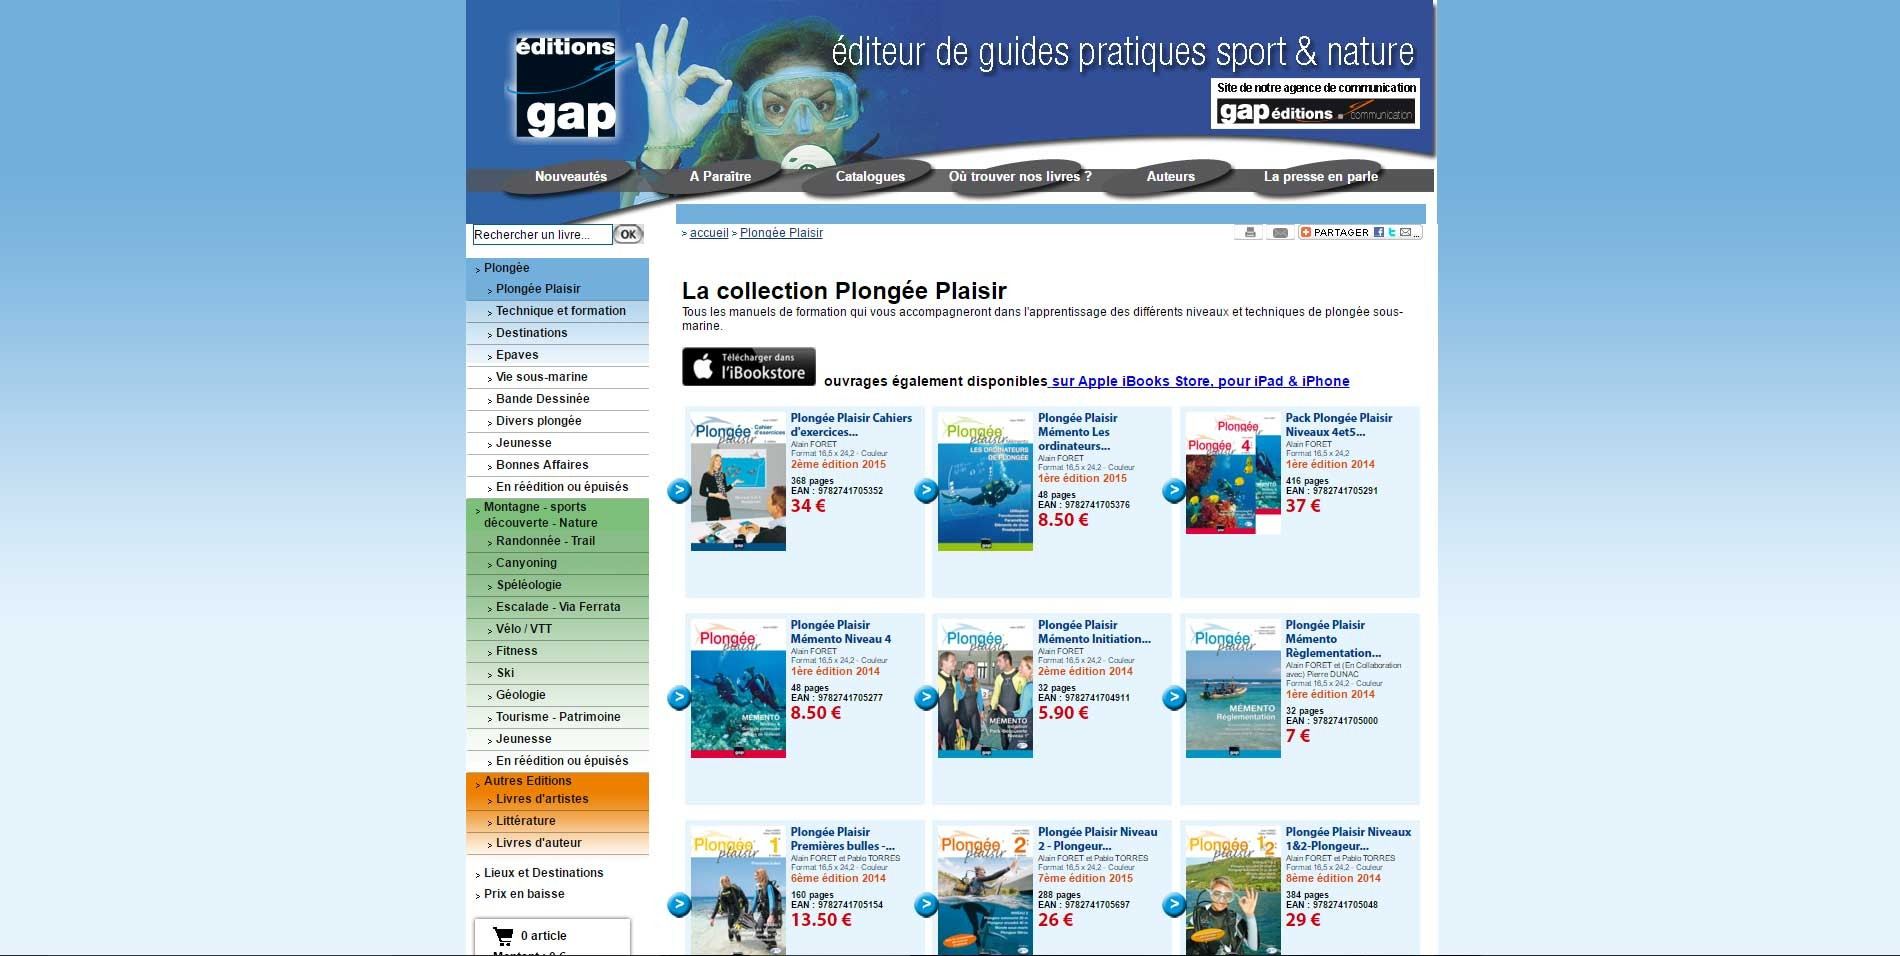 gapeditions-catalogue-593